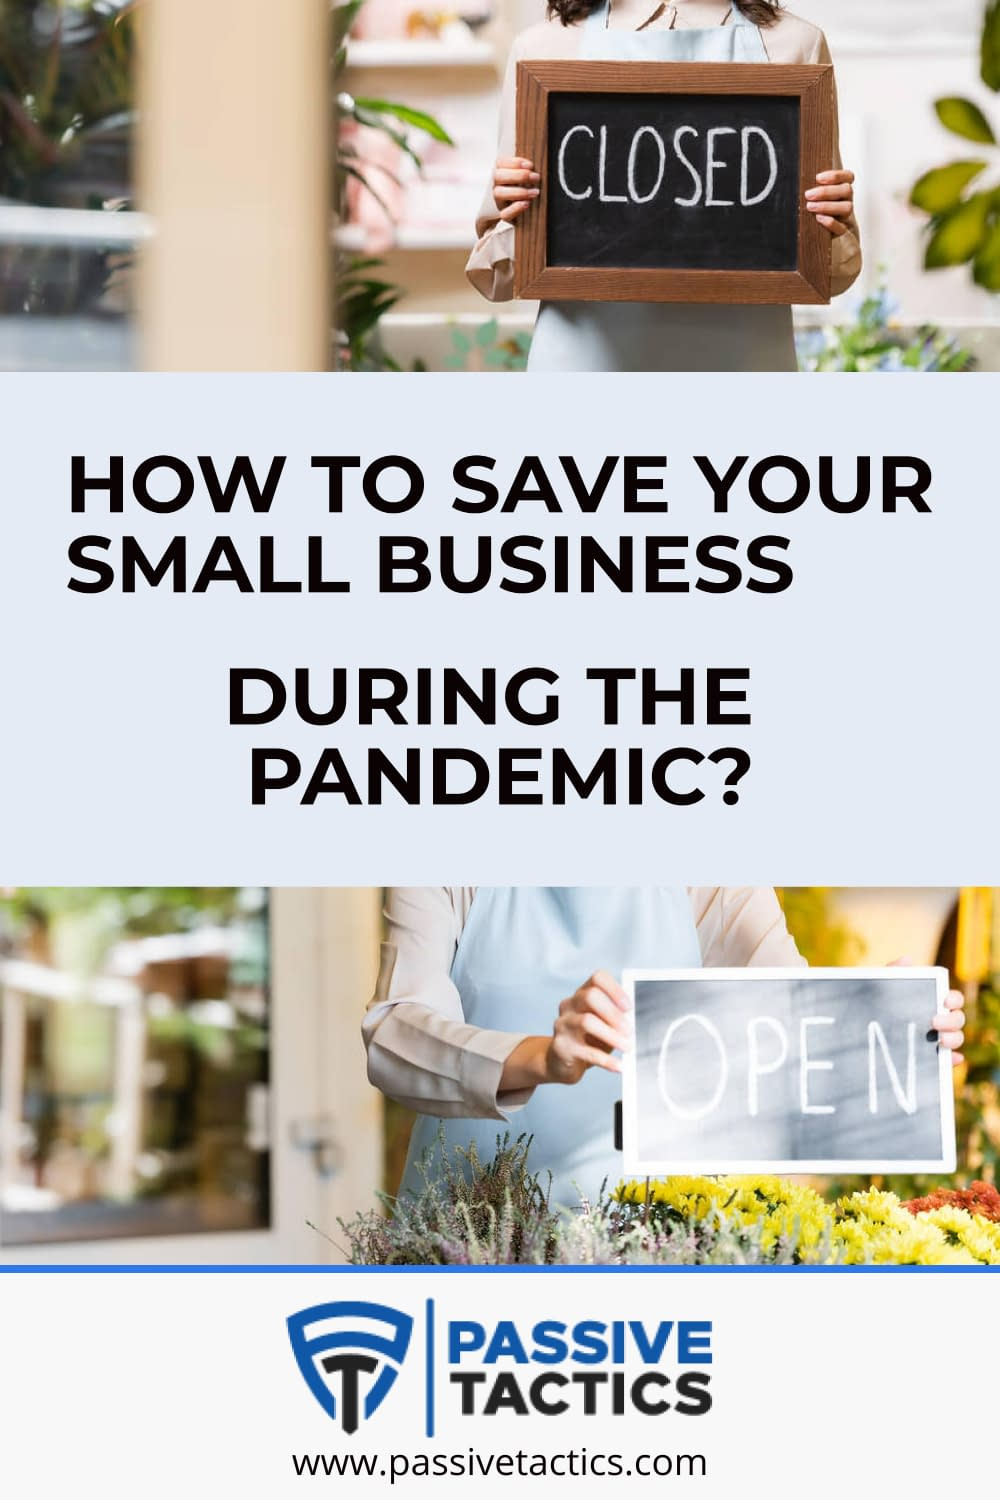 How To Save Your Small Business During The Pandemic